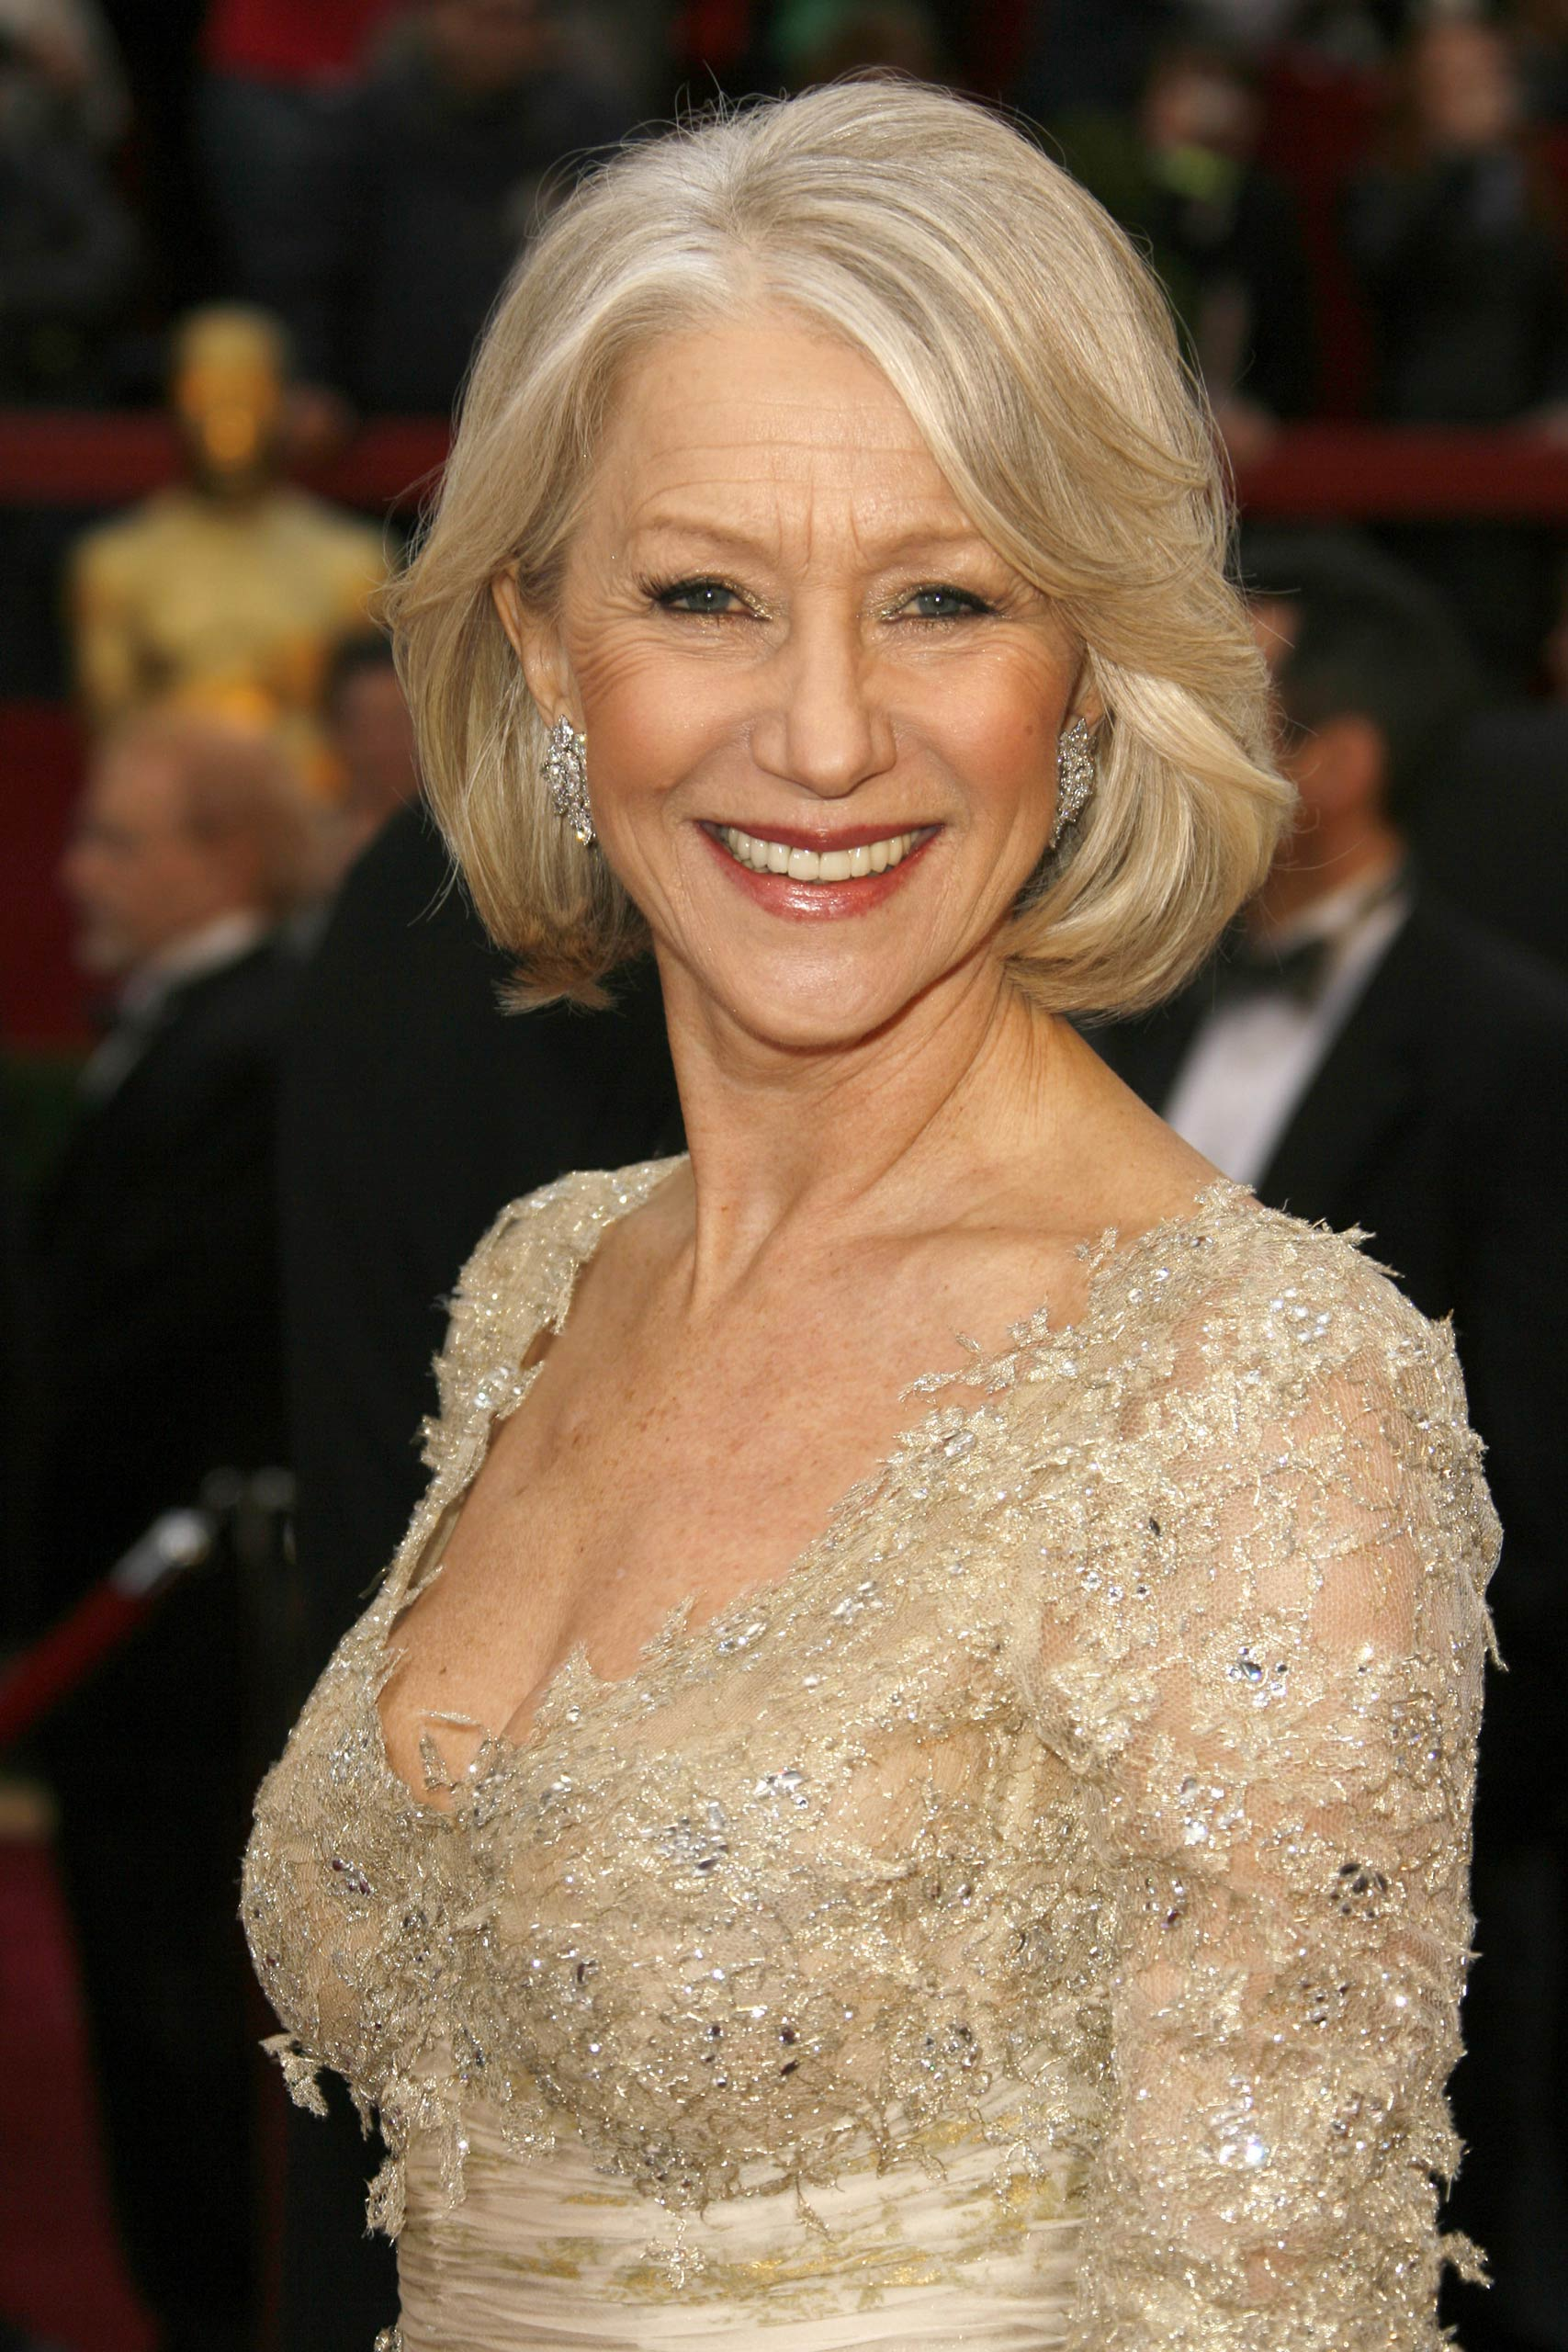 2007: Helen Mirren - The Queen